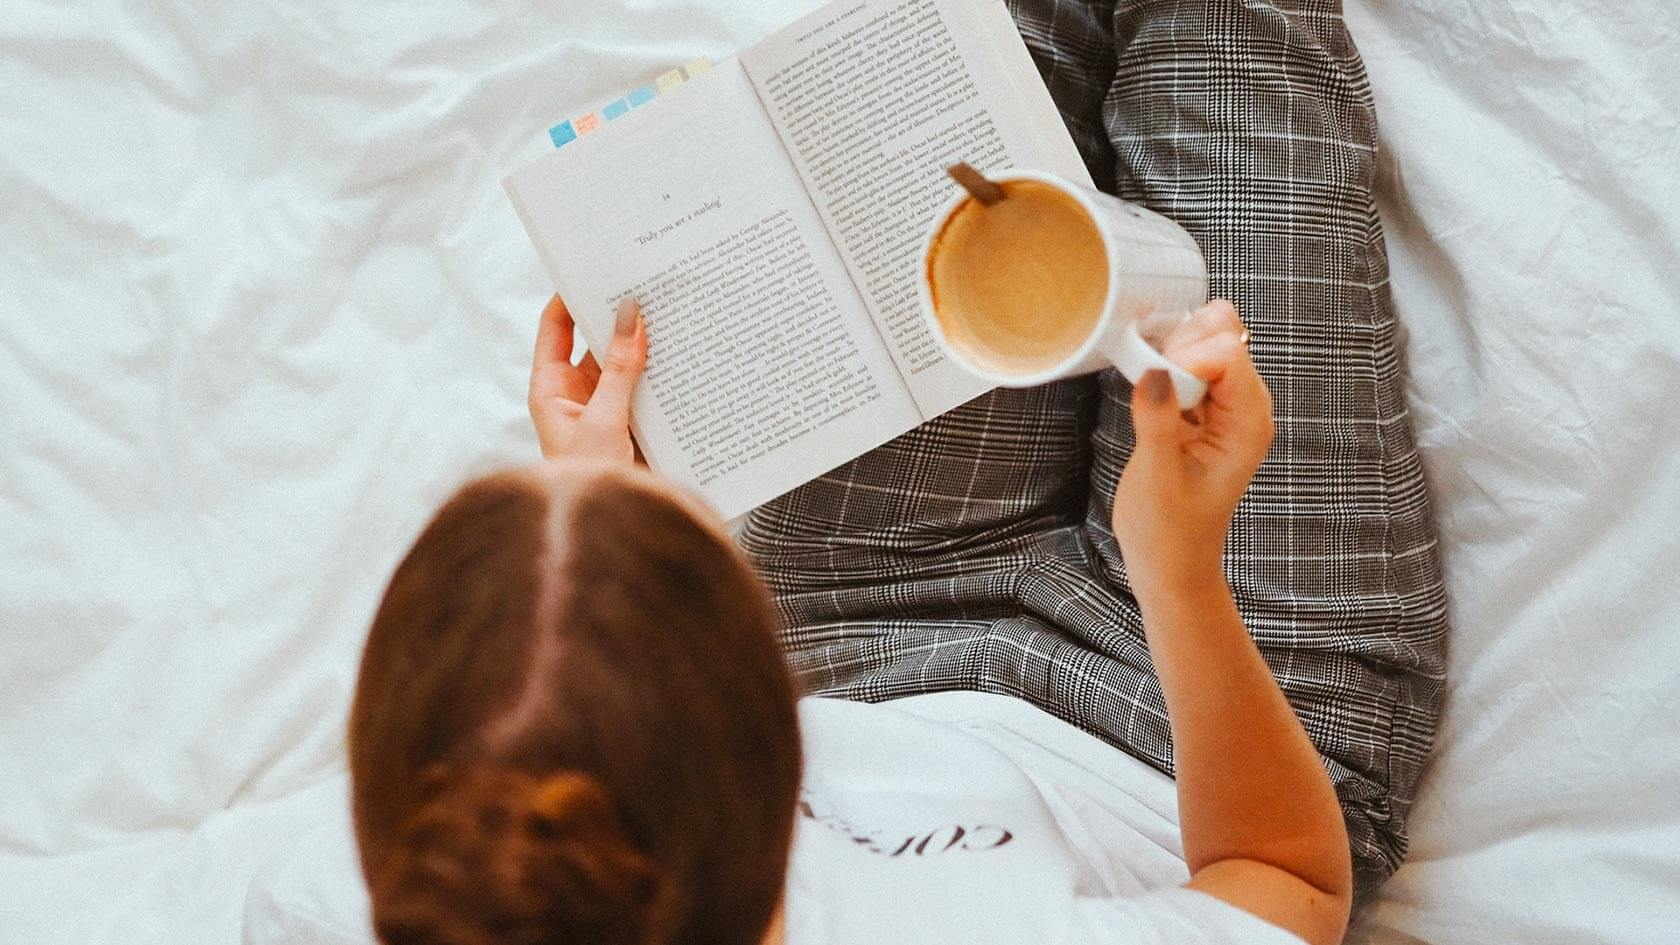 A woman sitting on her bed reading a book with a cup of coffee